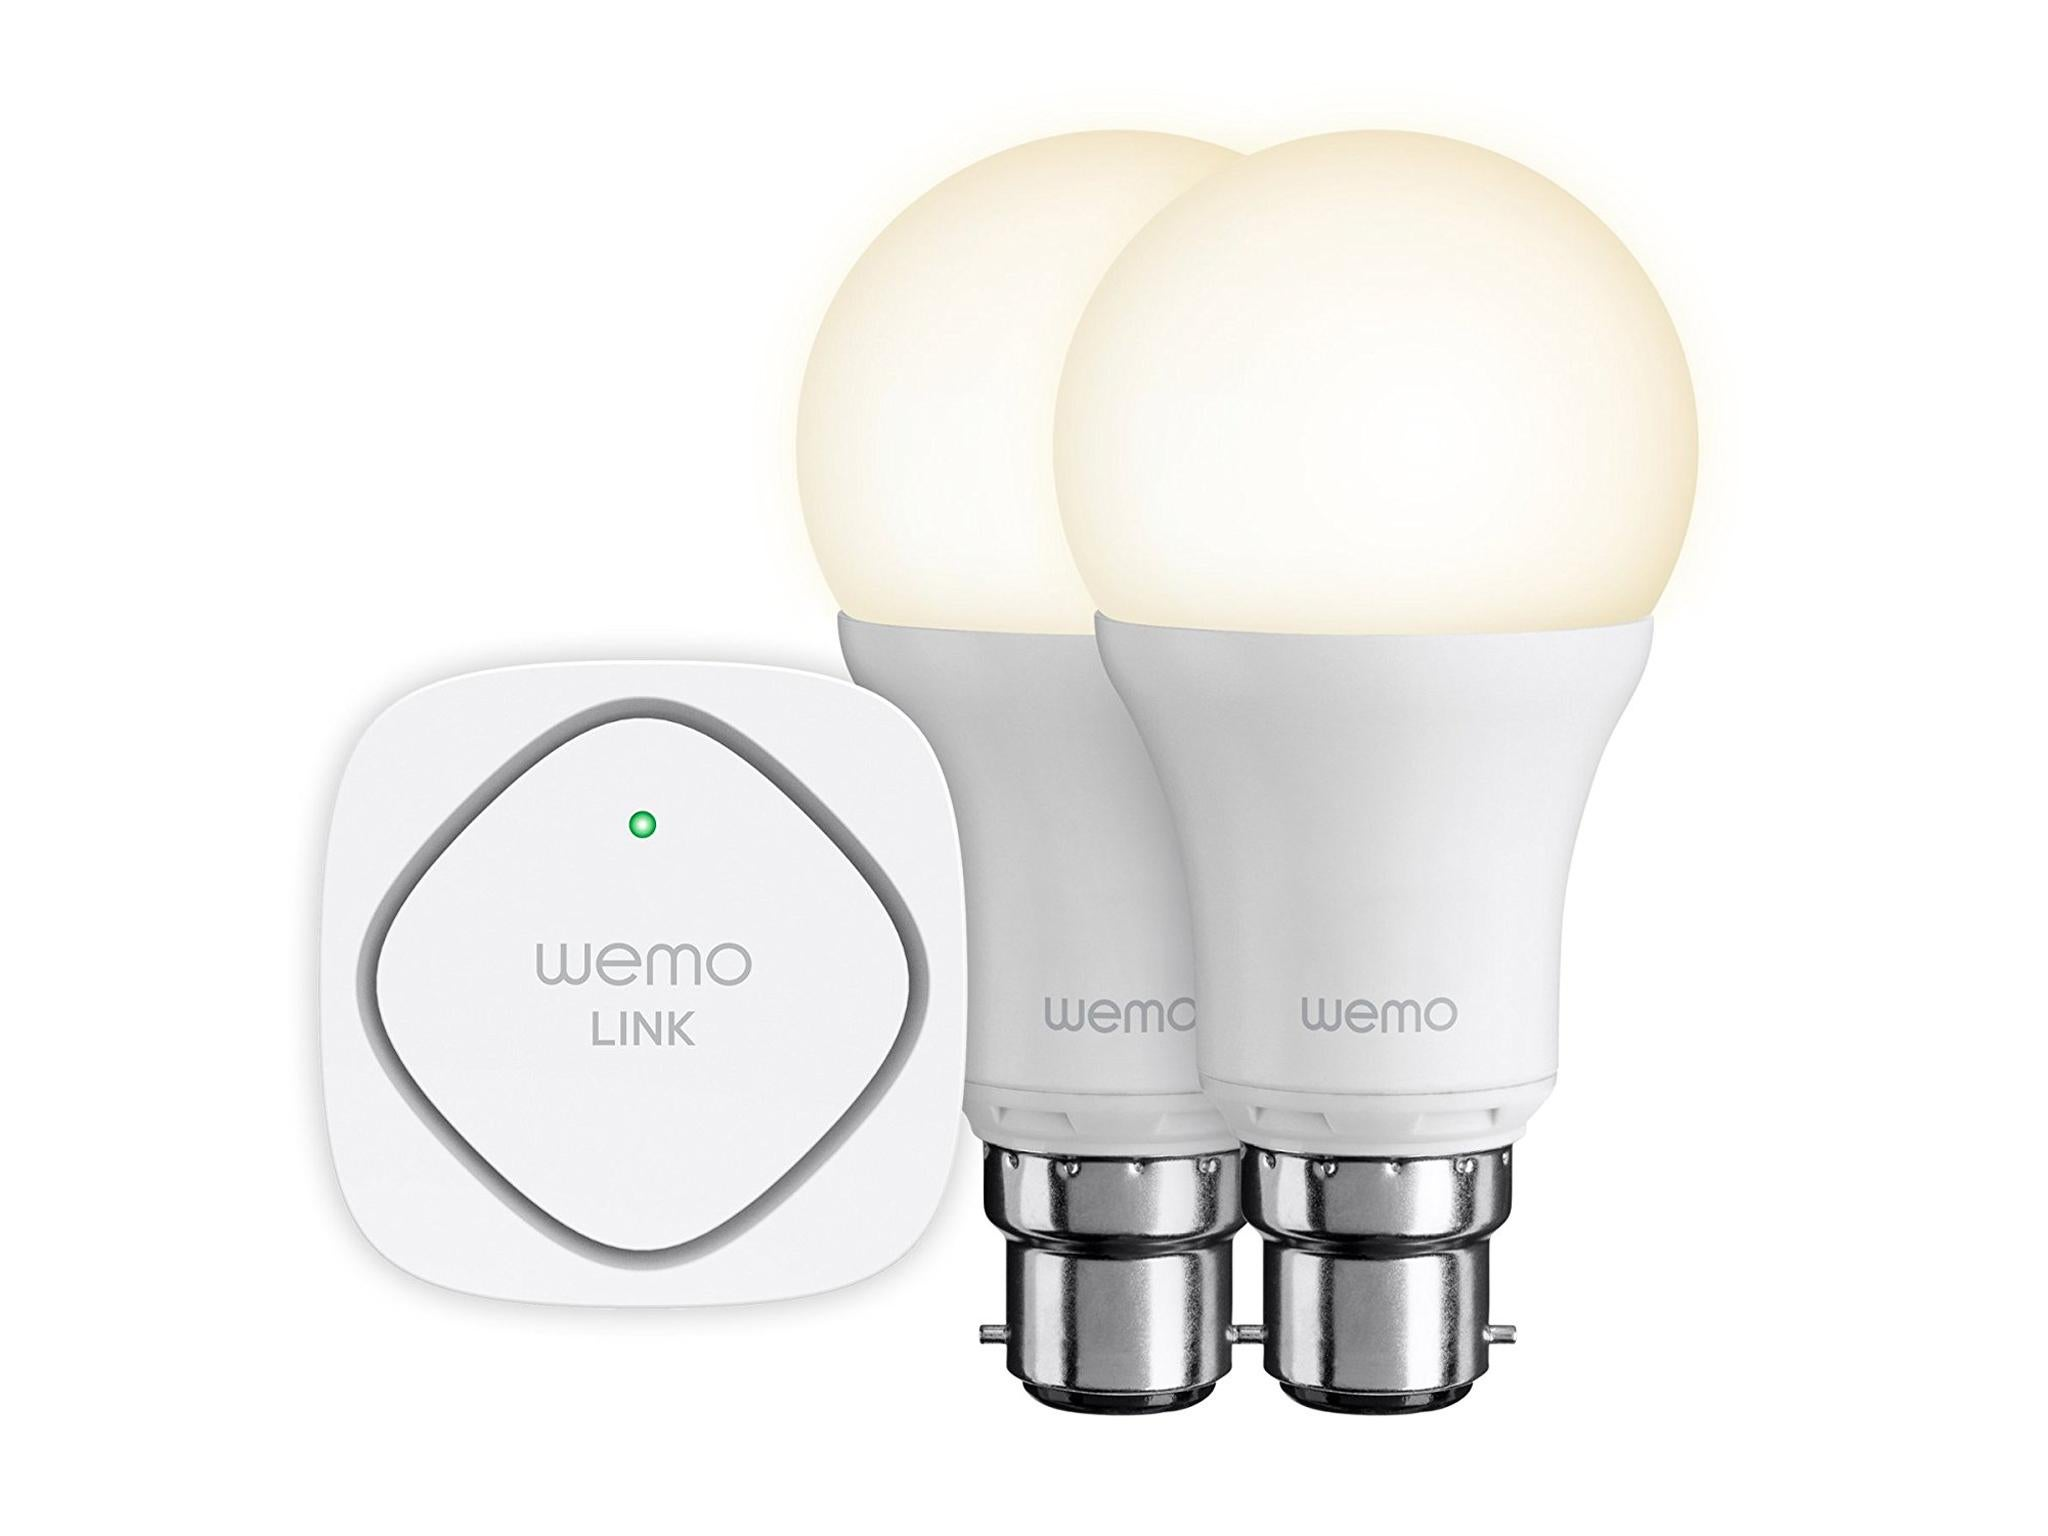 10 Best Smart Lighting The Independent How To Wire Two Lights Controlled From One Switch Belkin Wemo Led Starter Set 80 Staples